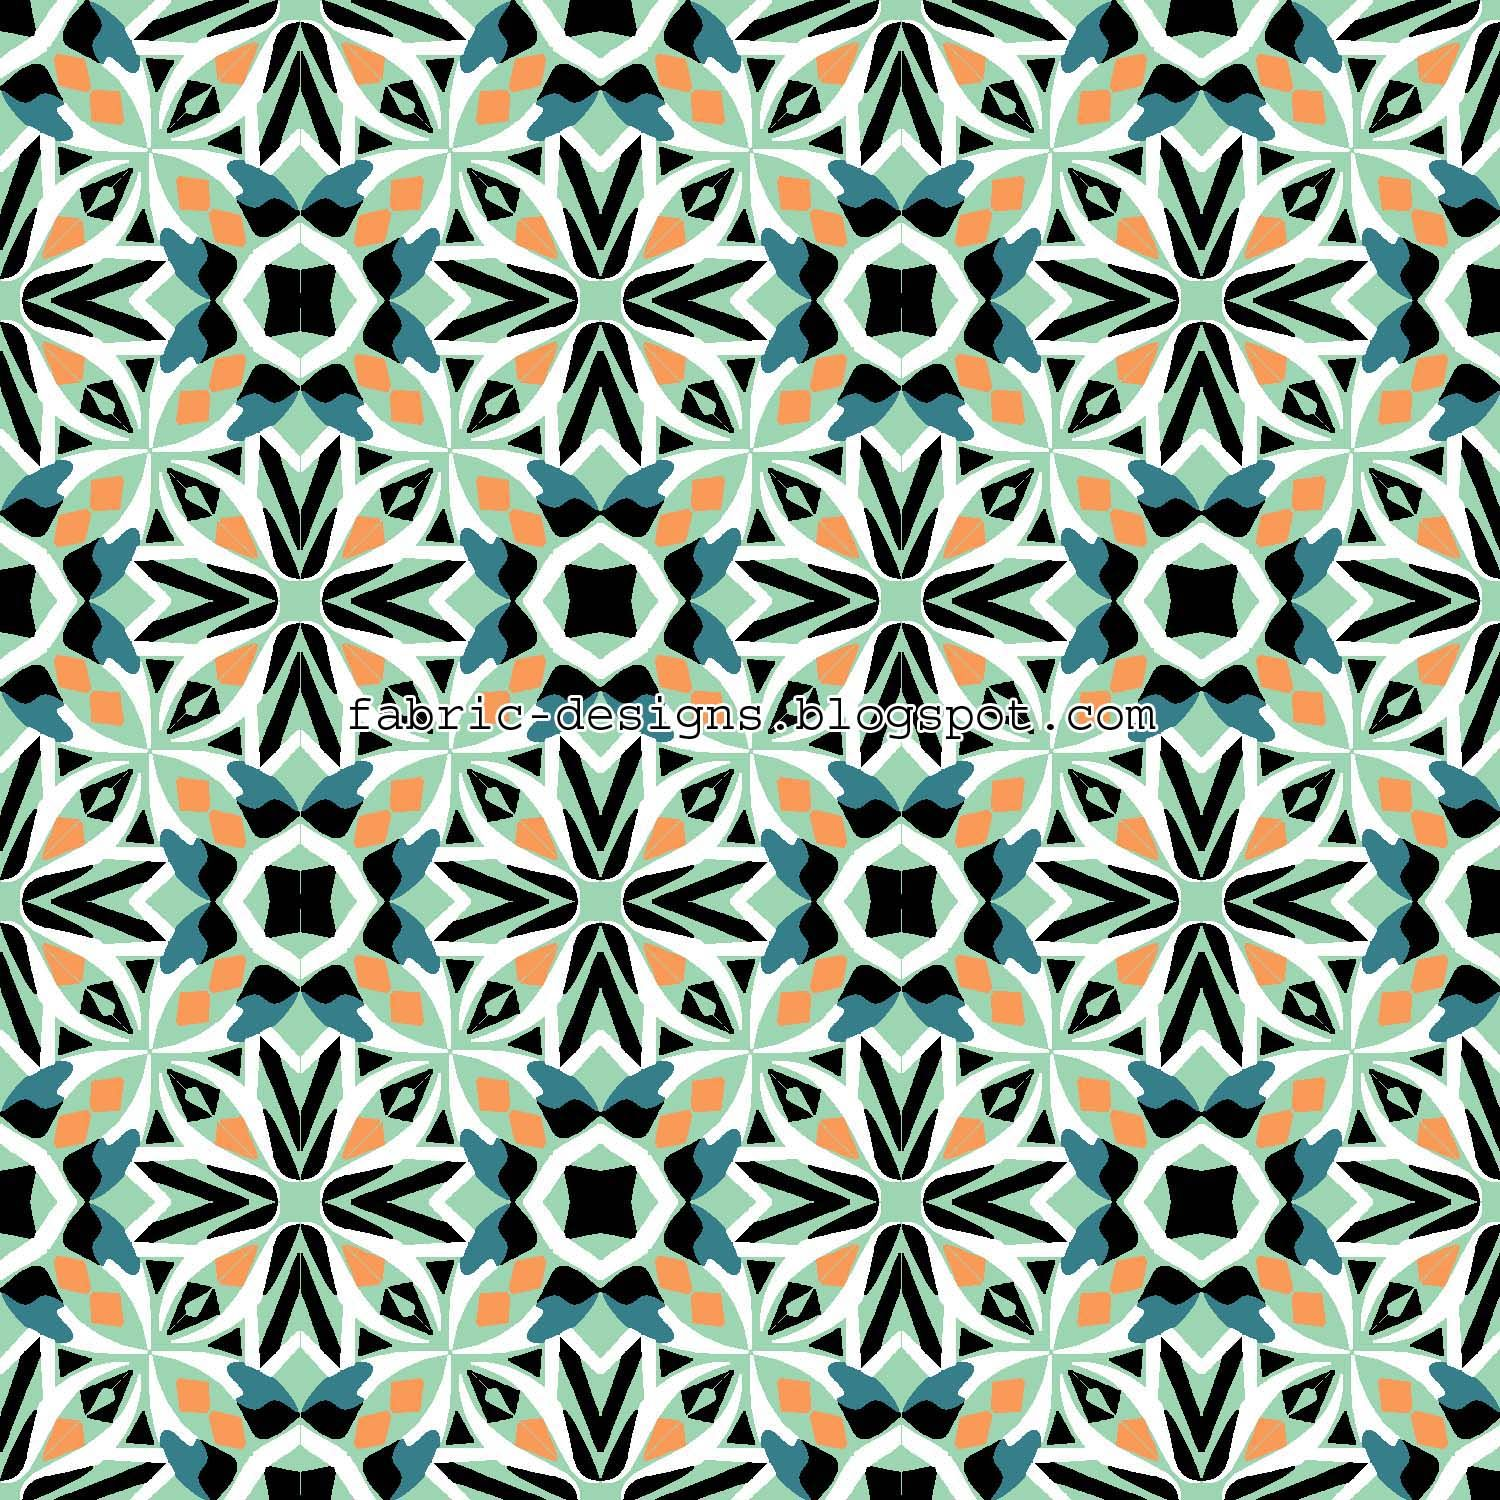 geometric patterns | geometric patterns for fabric and textile designing